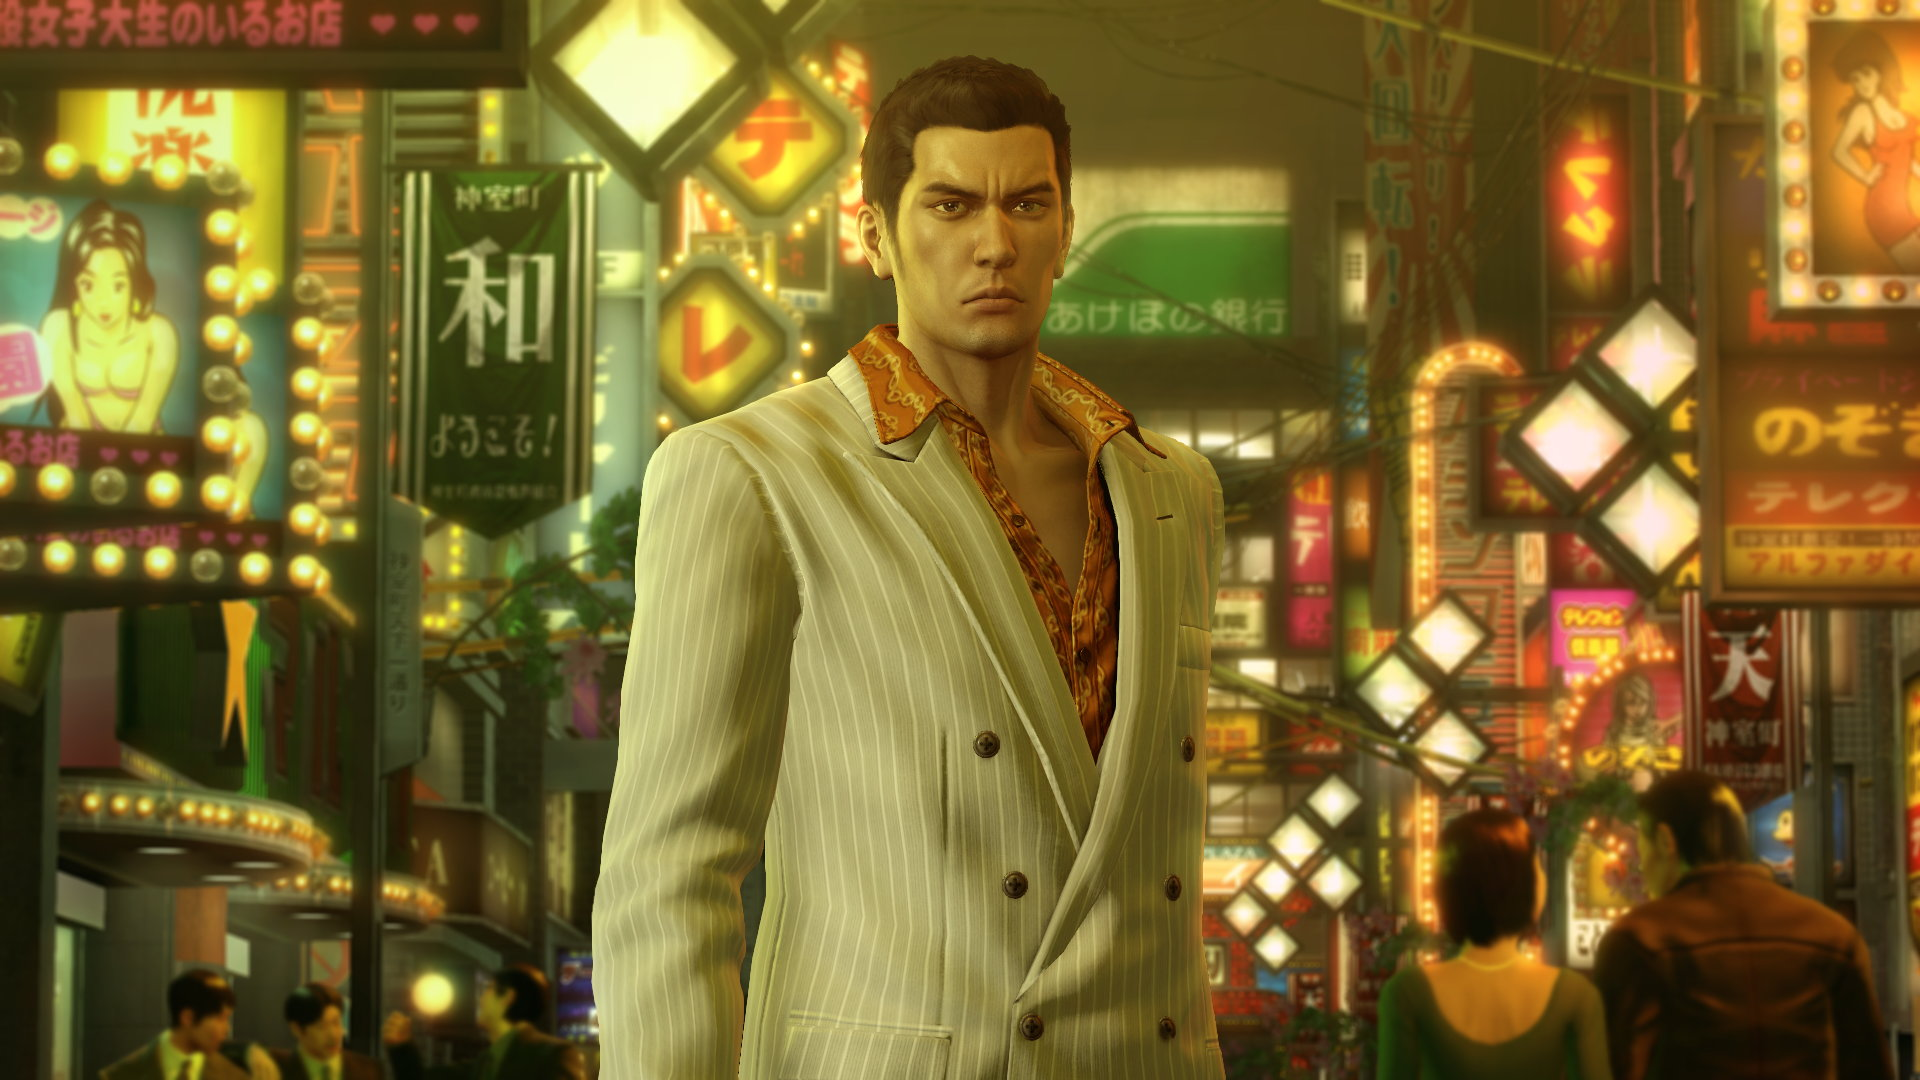 Kazuma Kiryu, protagonist of Yakuza 0, stands in busy a street. Many neon signs crowd the buildings behind him.